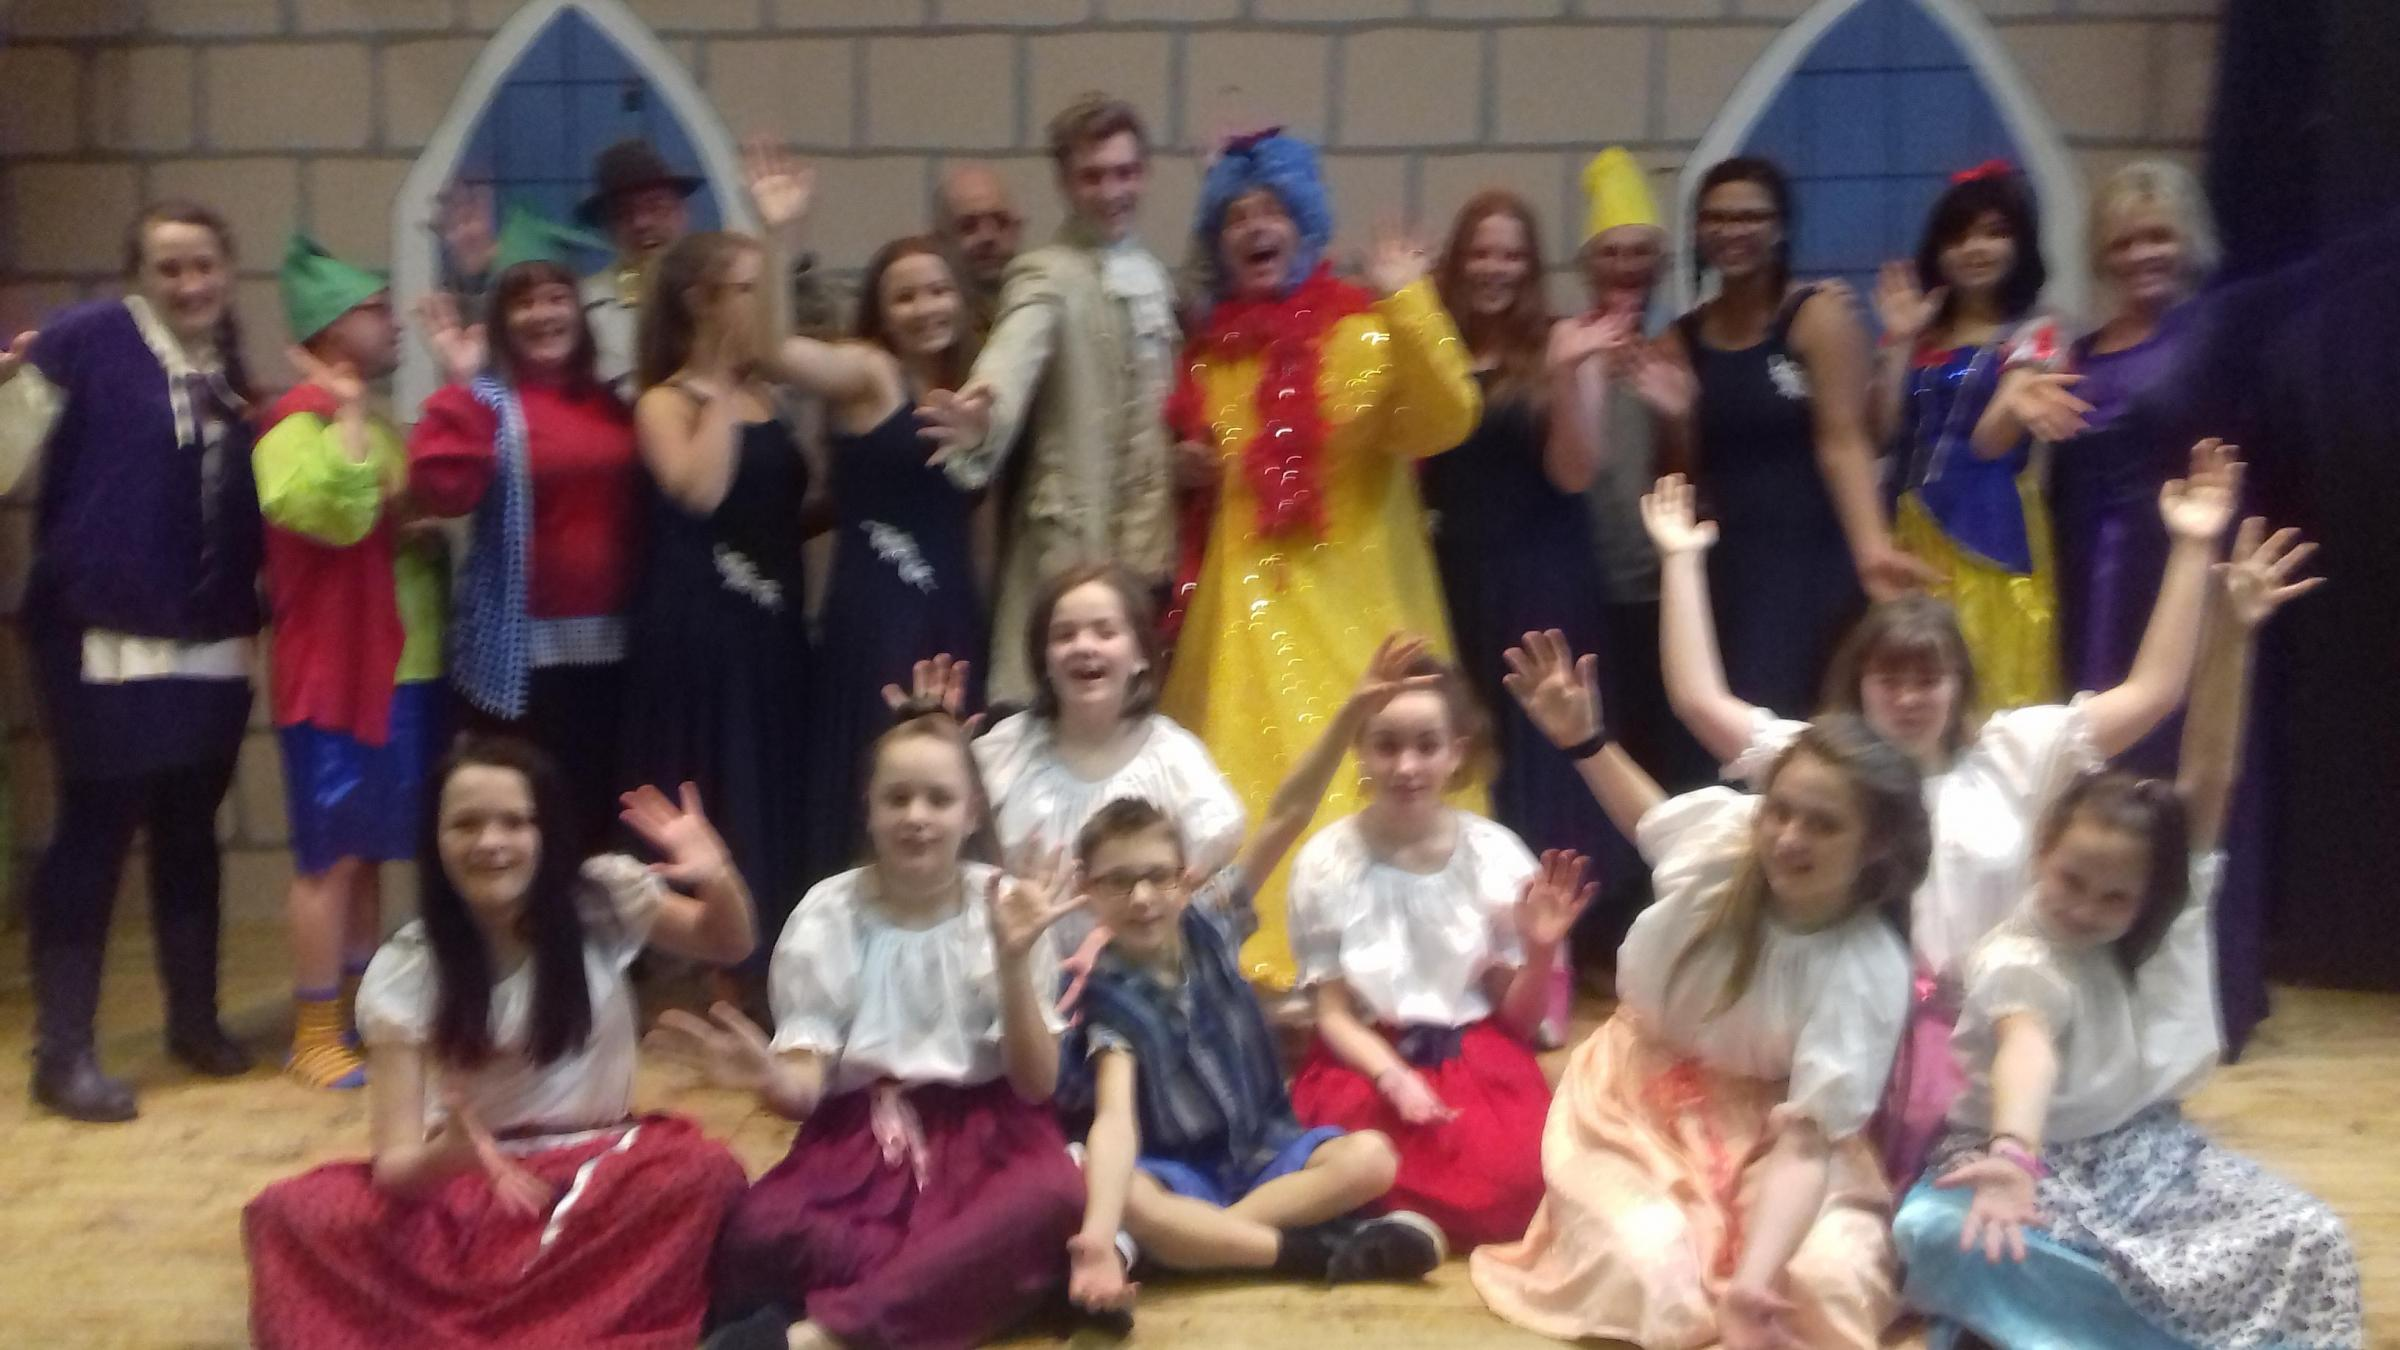 Snow White and the Several Dwarfs